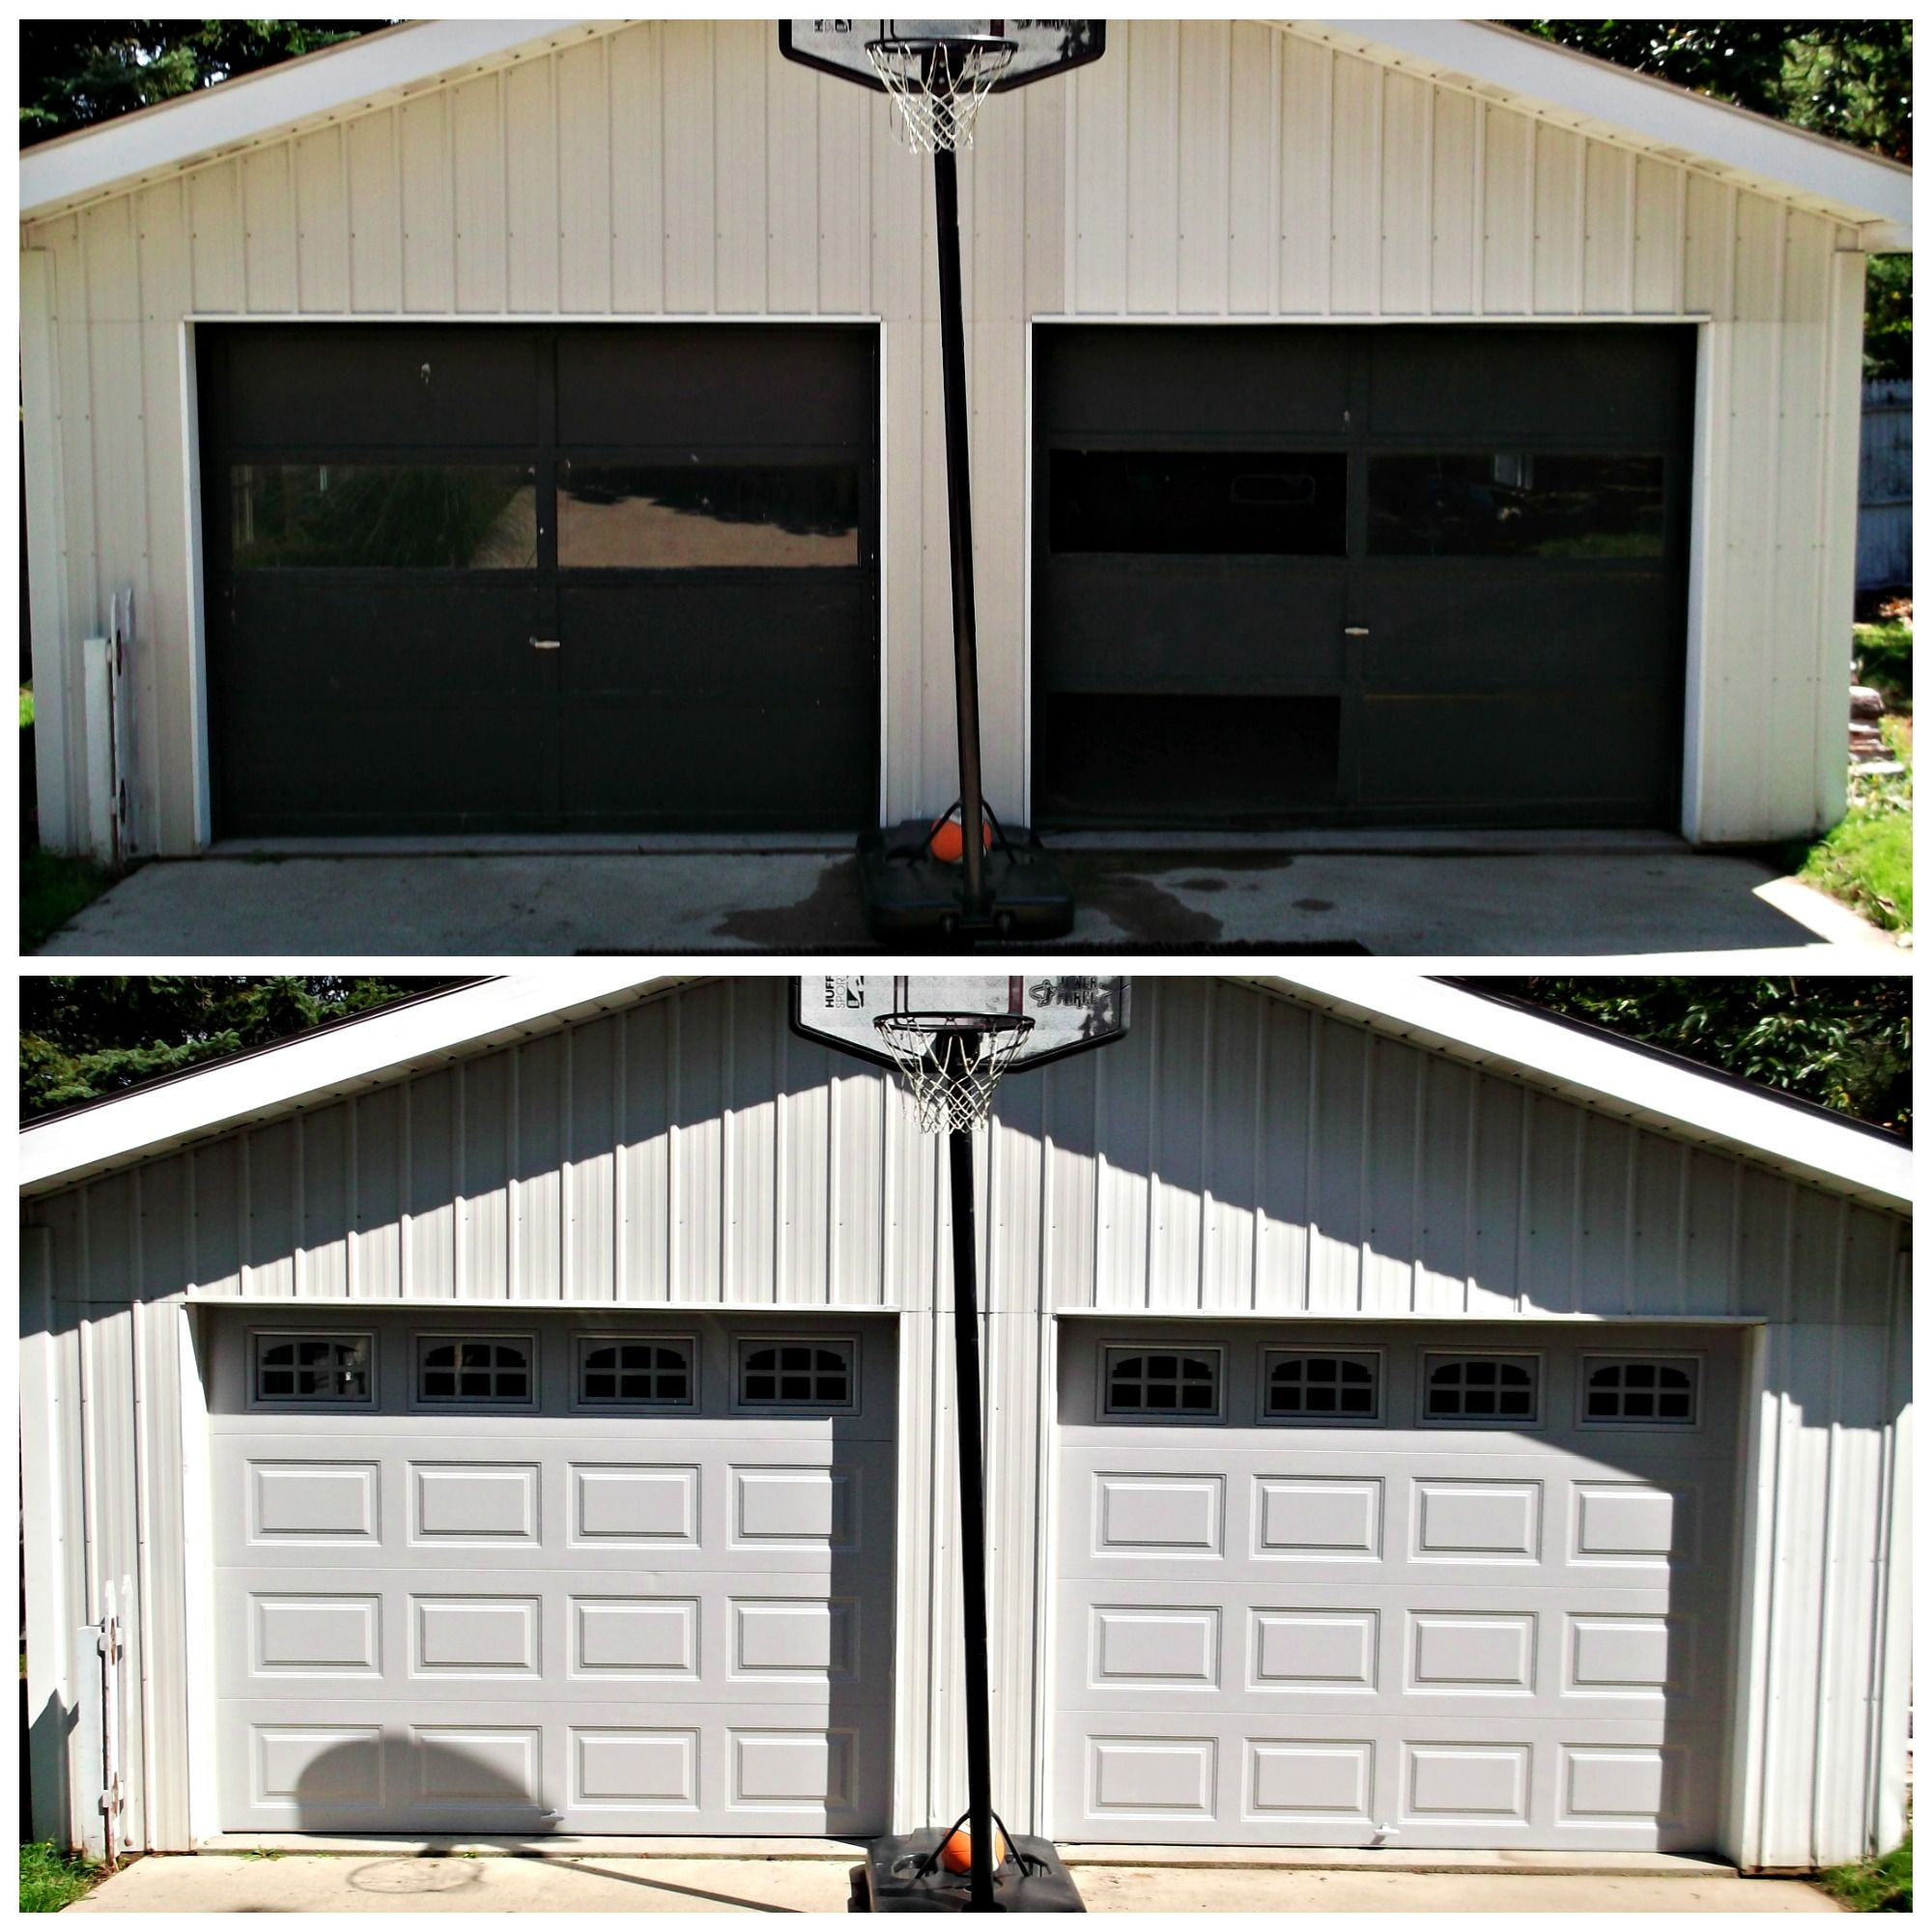 Clopay 4050 Garage Door In Grey Gielgaragedoors Clopay